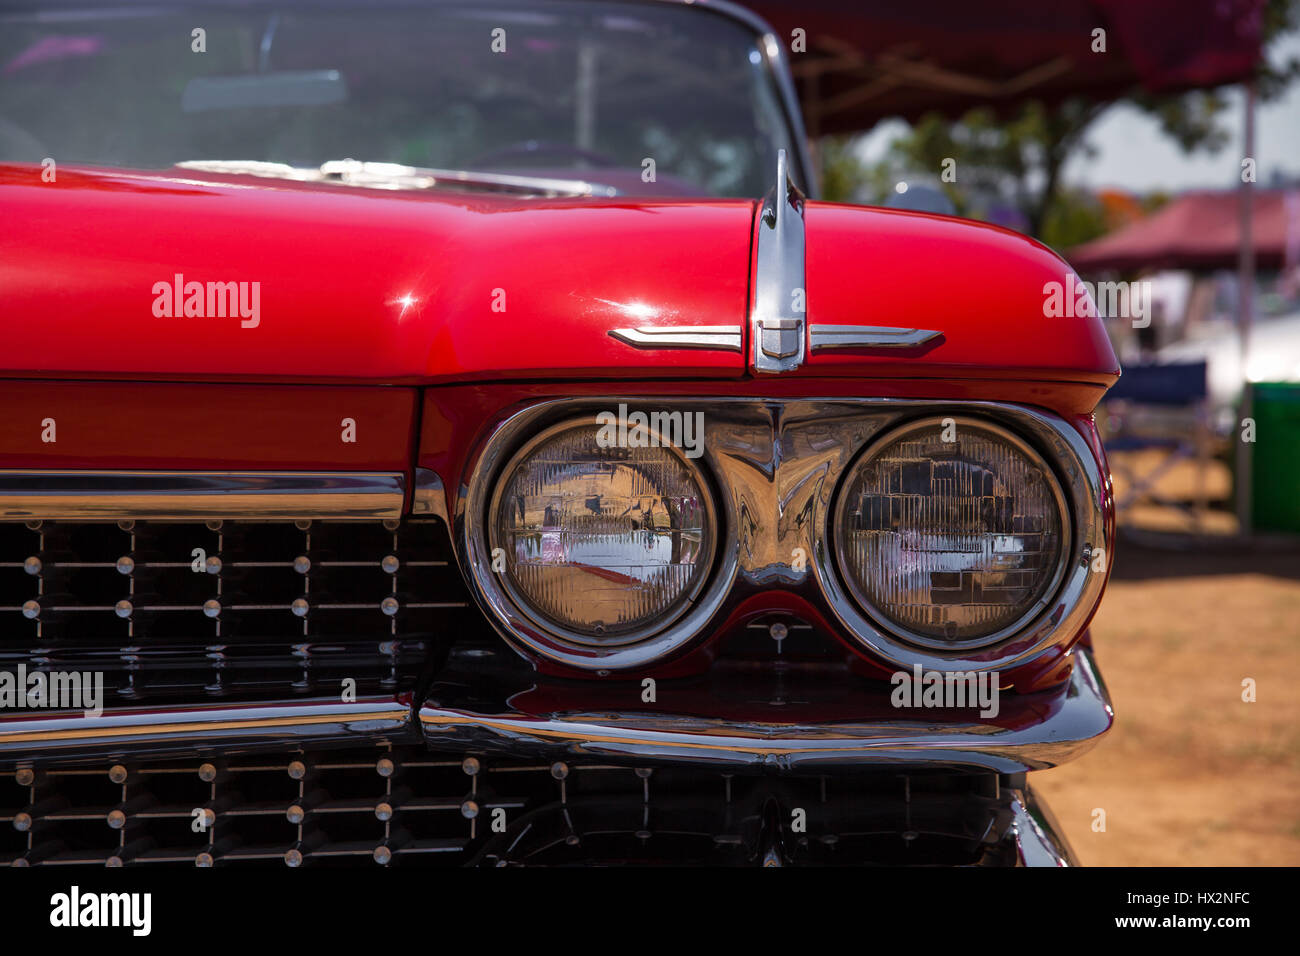 1959 cadillac convertible headlight and front view stock image